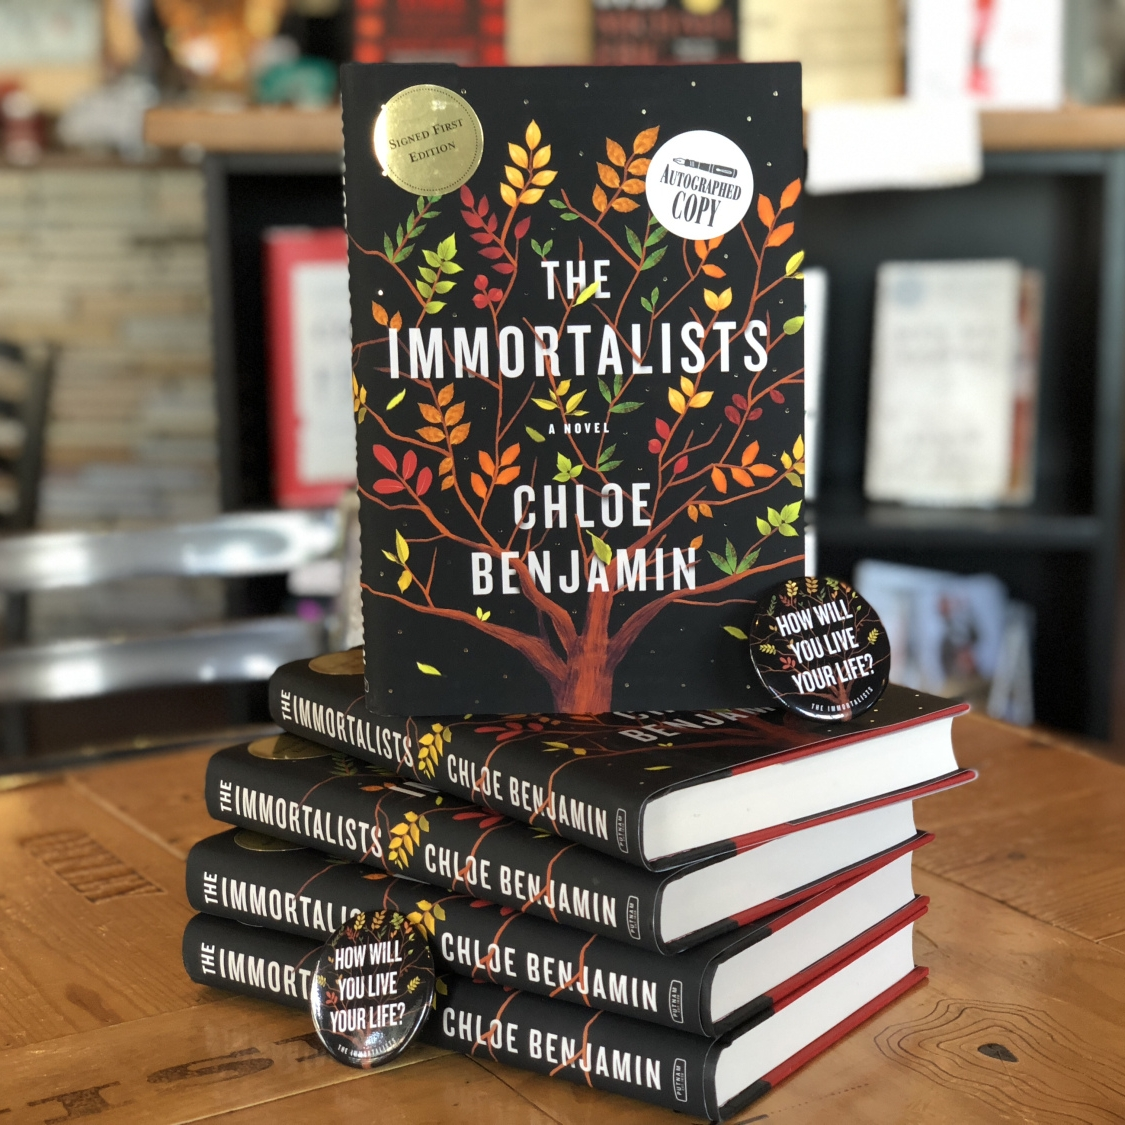 The Immoralists by Chloe Benjamin